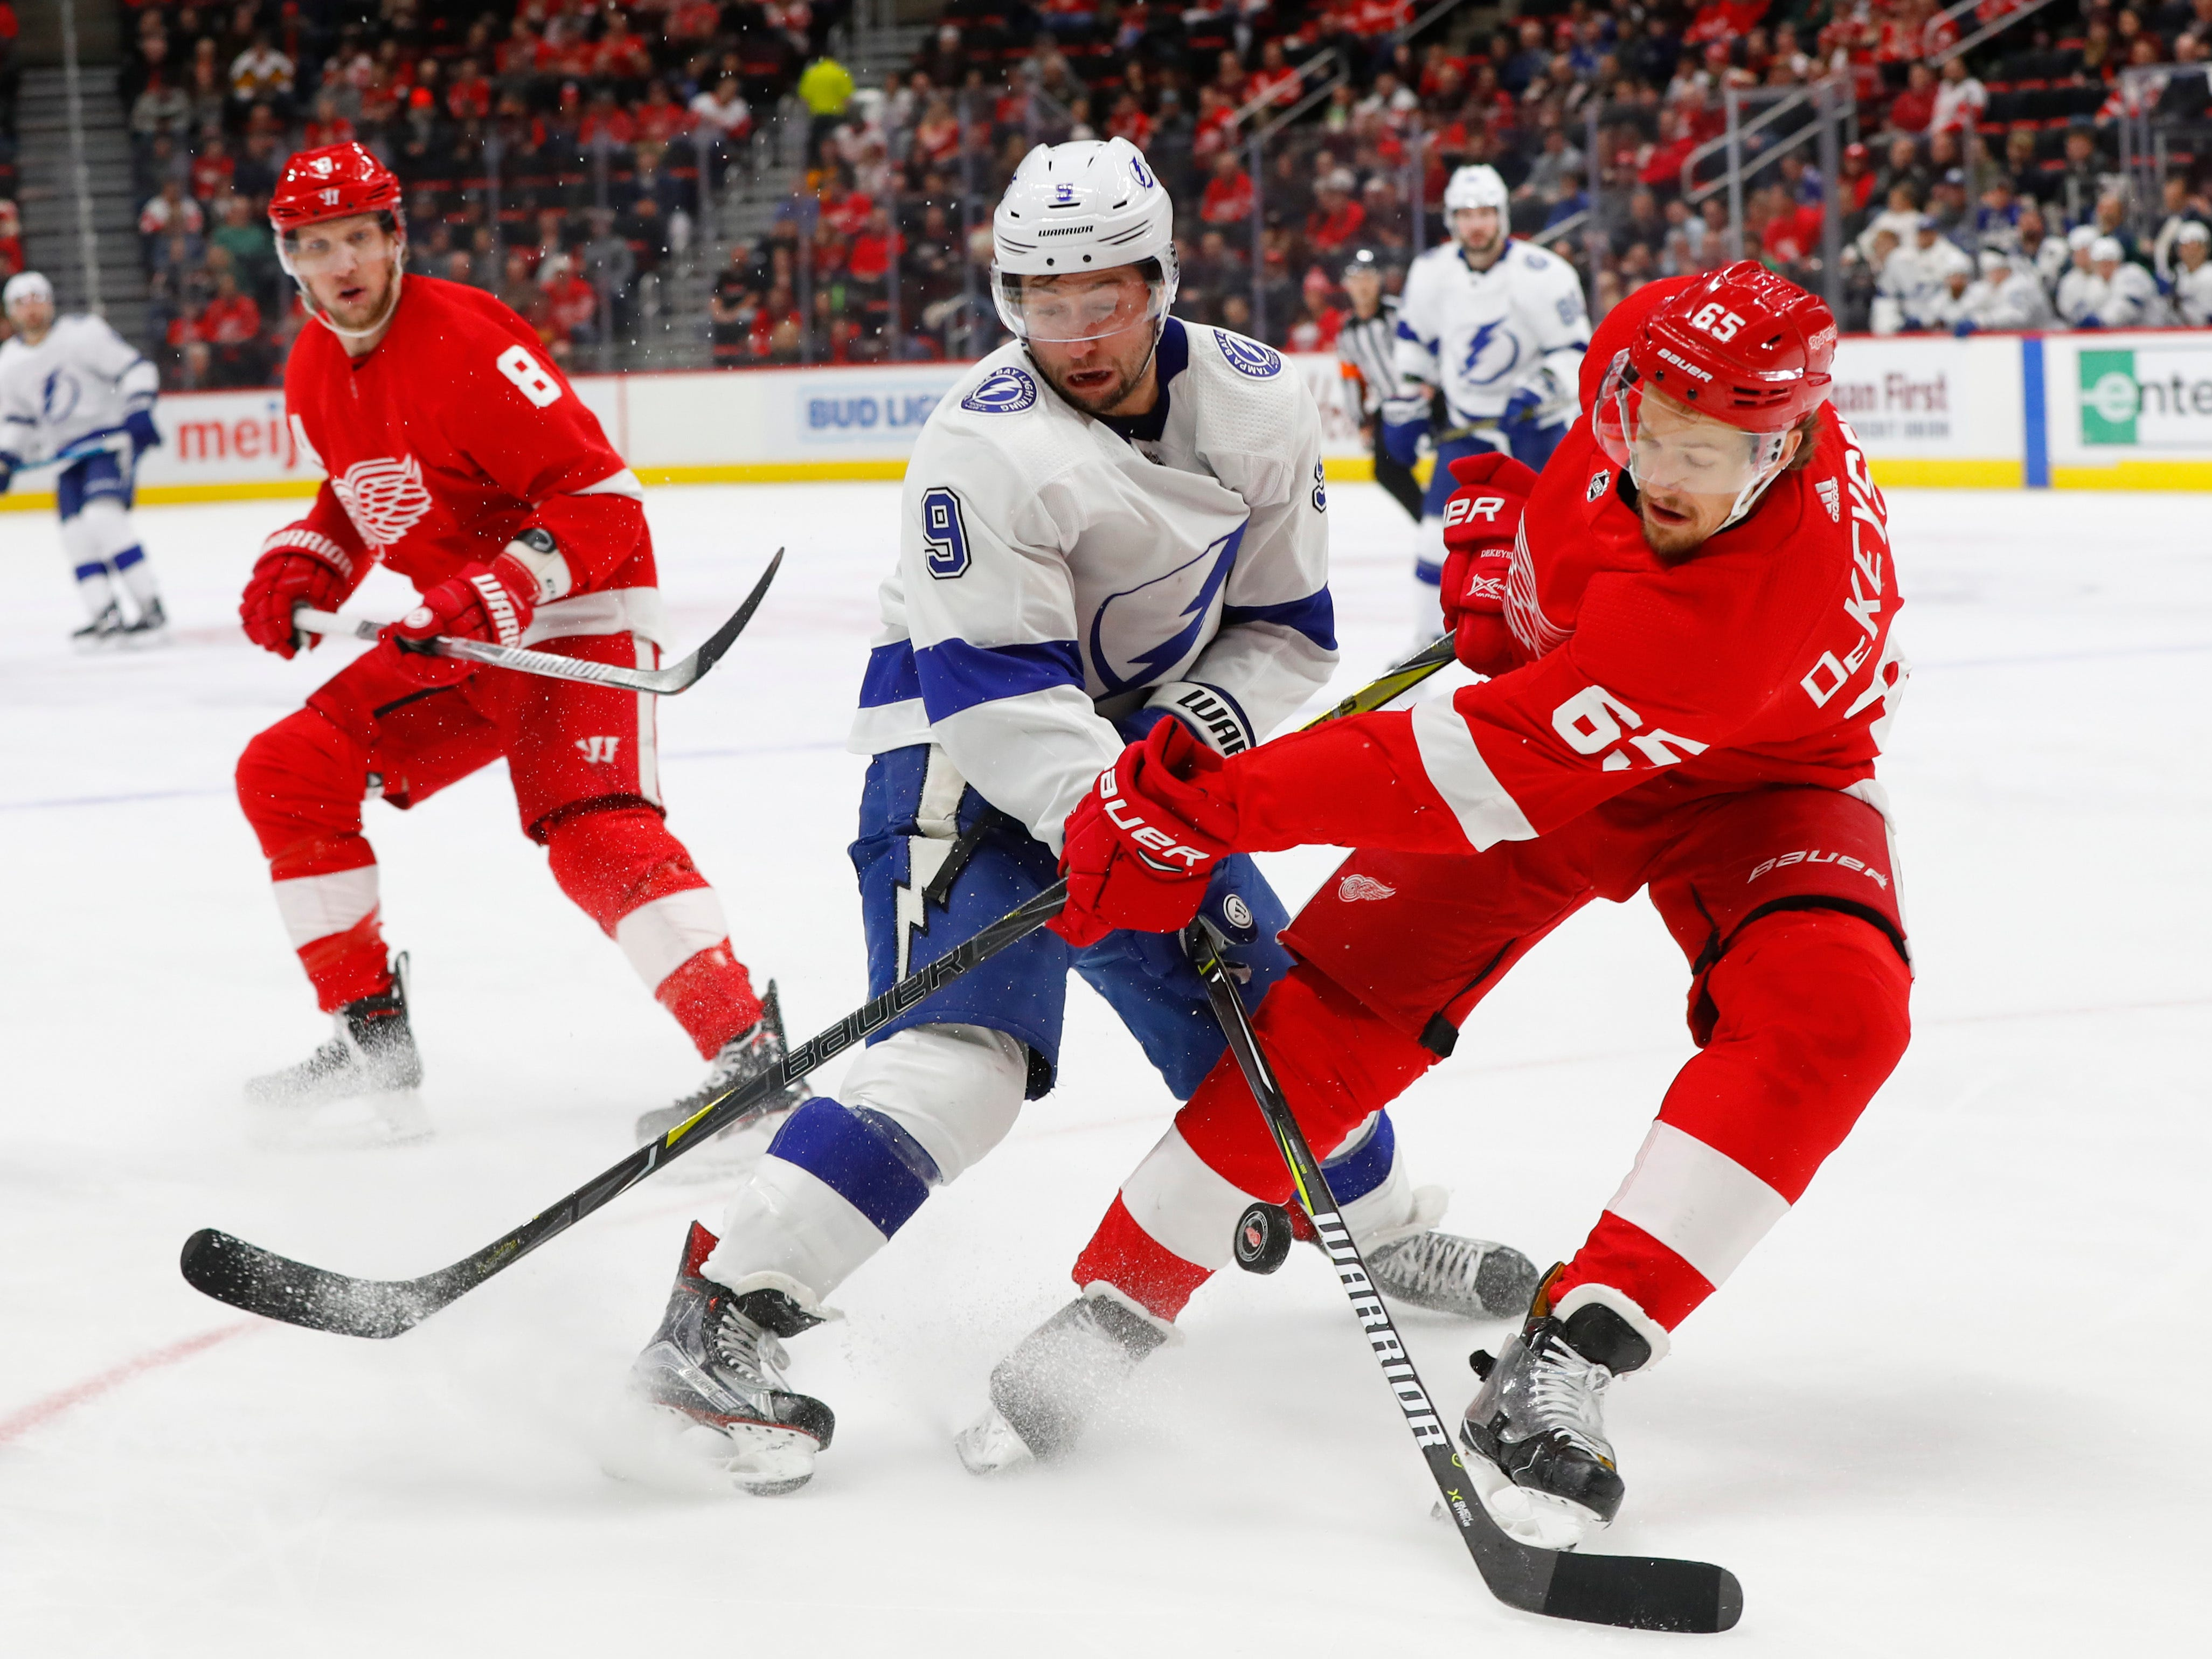 Detroit Red Wings lose another player for multiple weeks to injury